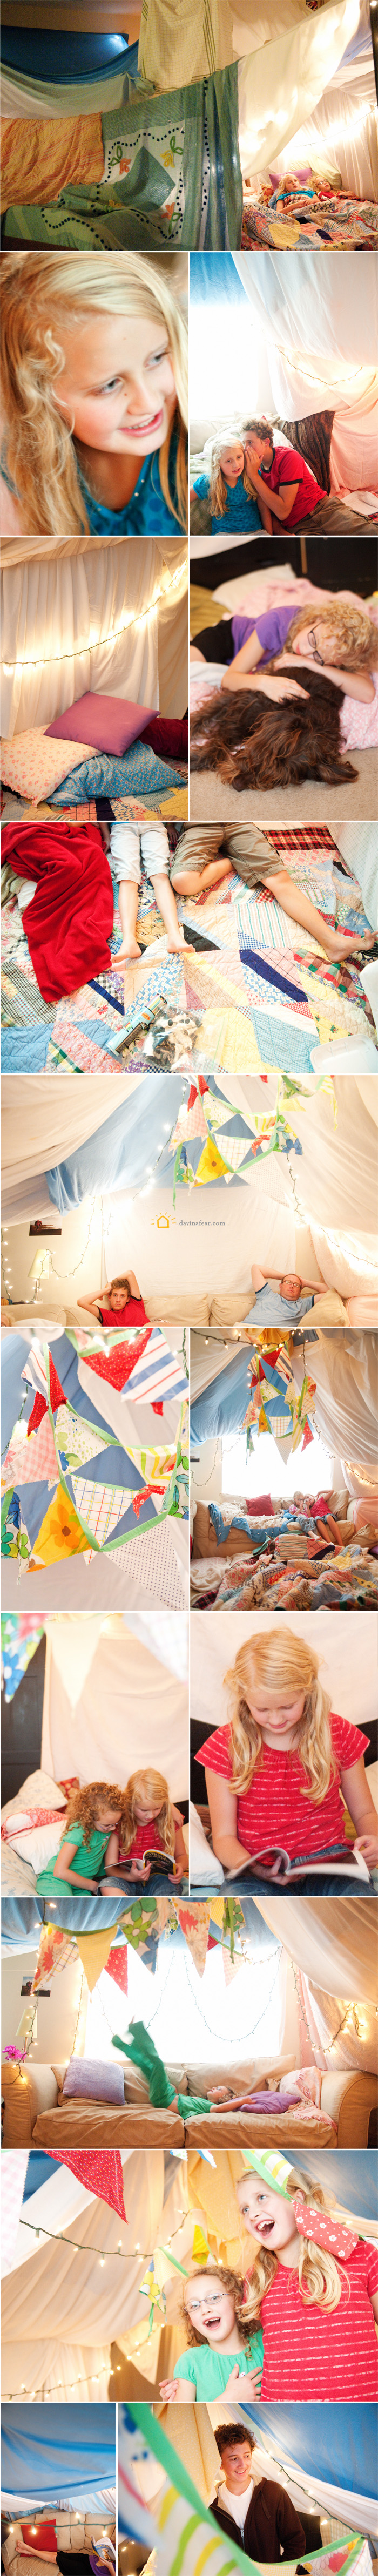 girls playing in huge blanket fort and laying on lots of pillows and reading books